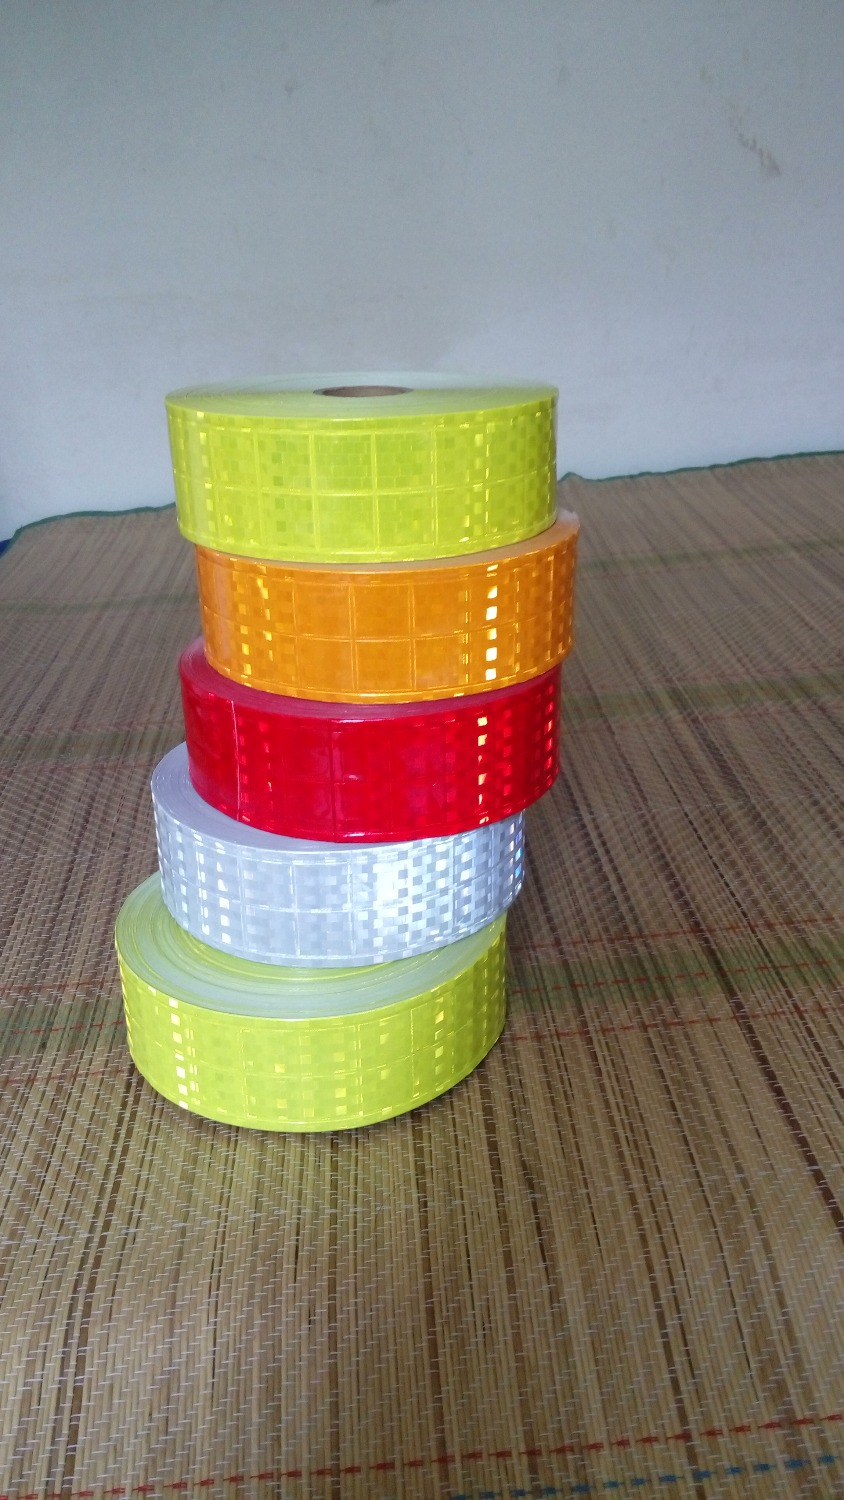 5cm*50m High Visibility Warning Safety Reflective PVC Tape Reflective Vest Material 4 Color For Choice <br>